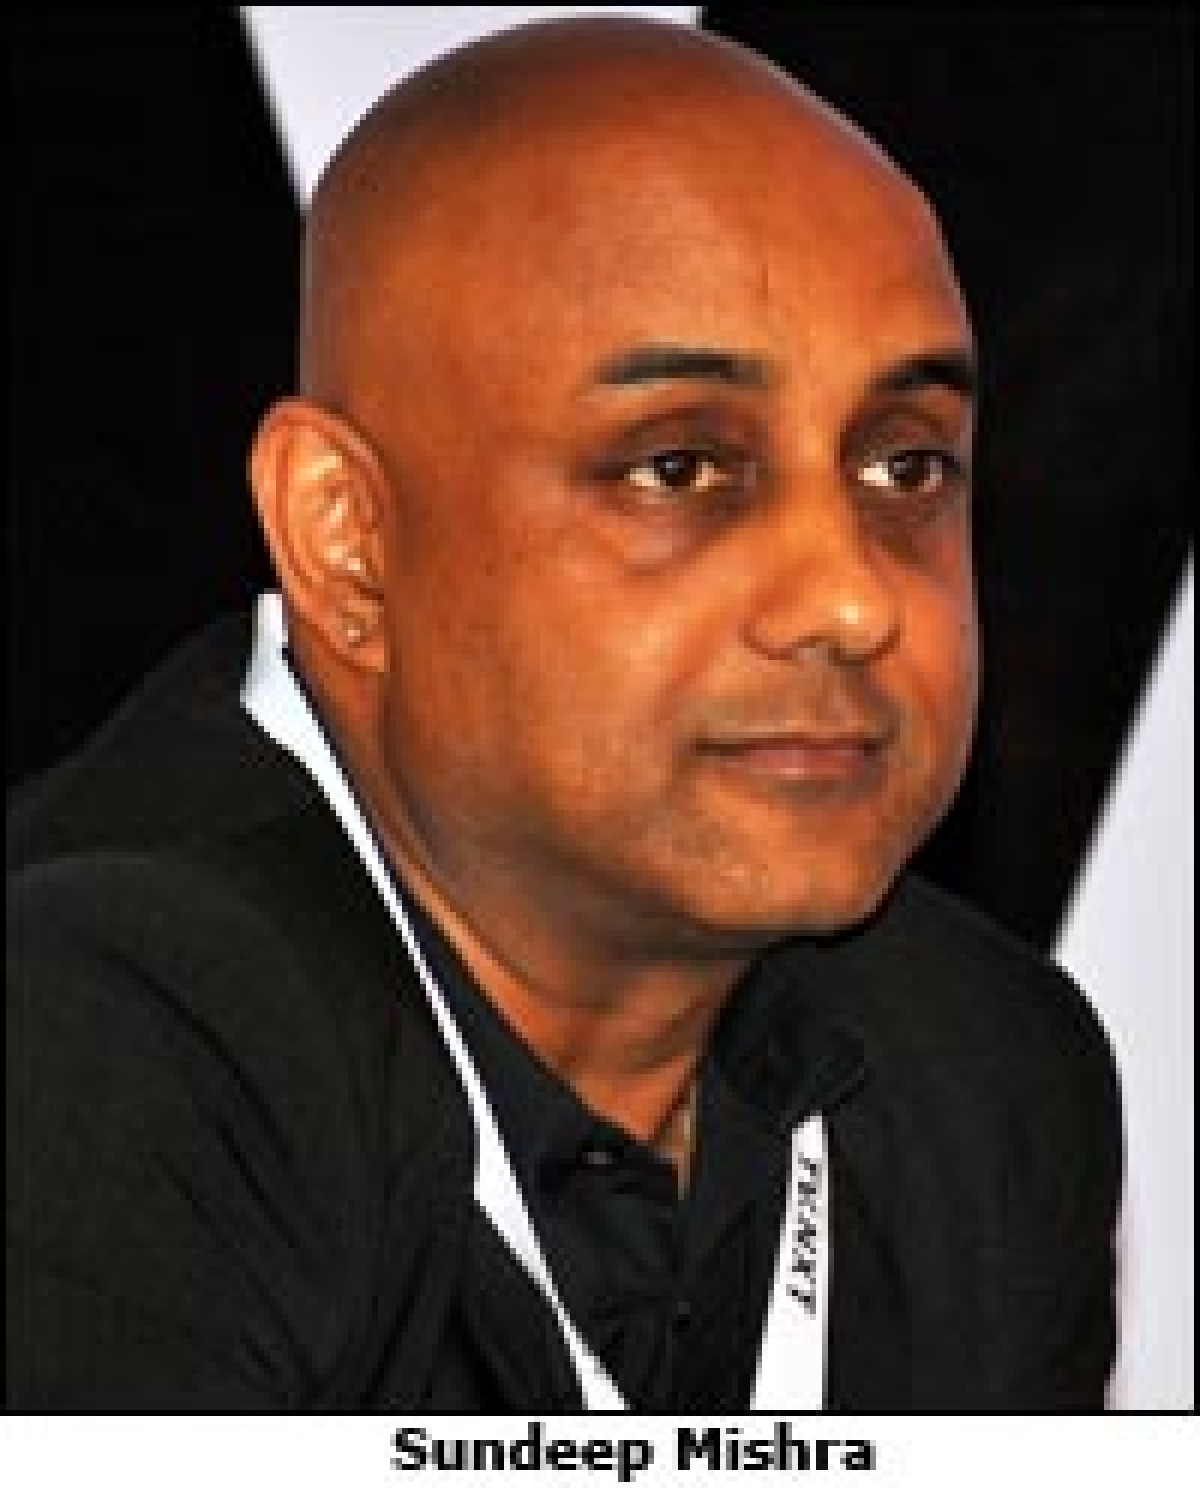 TV.NXT 2011: There is opportunity for broadcasters to develop other sports for revenue generation